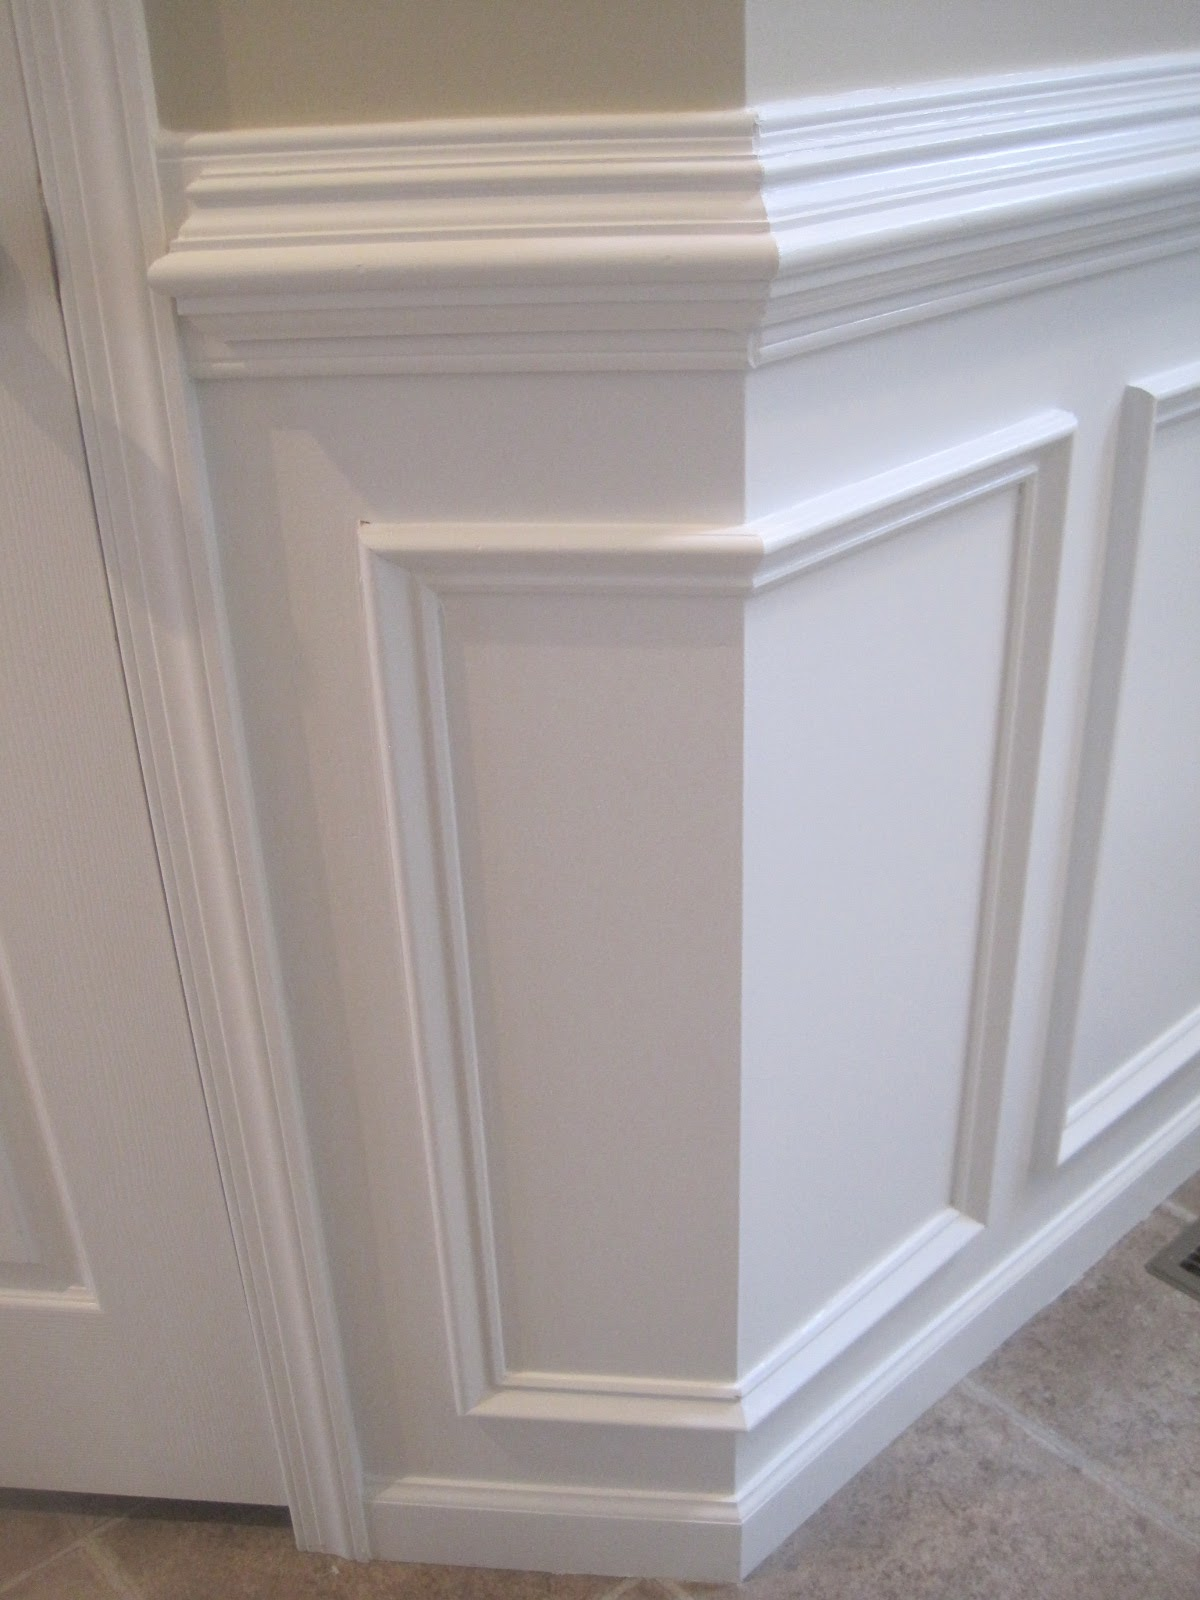 Chair Moulding Ideas Cover Rentals Kingston Designed To Dwell Tips For Installing Rail